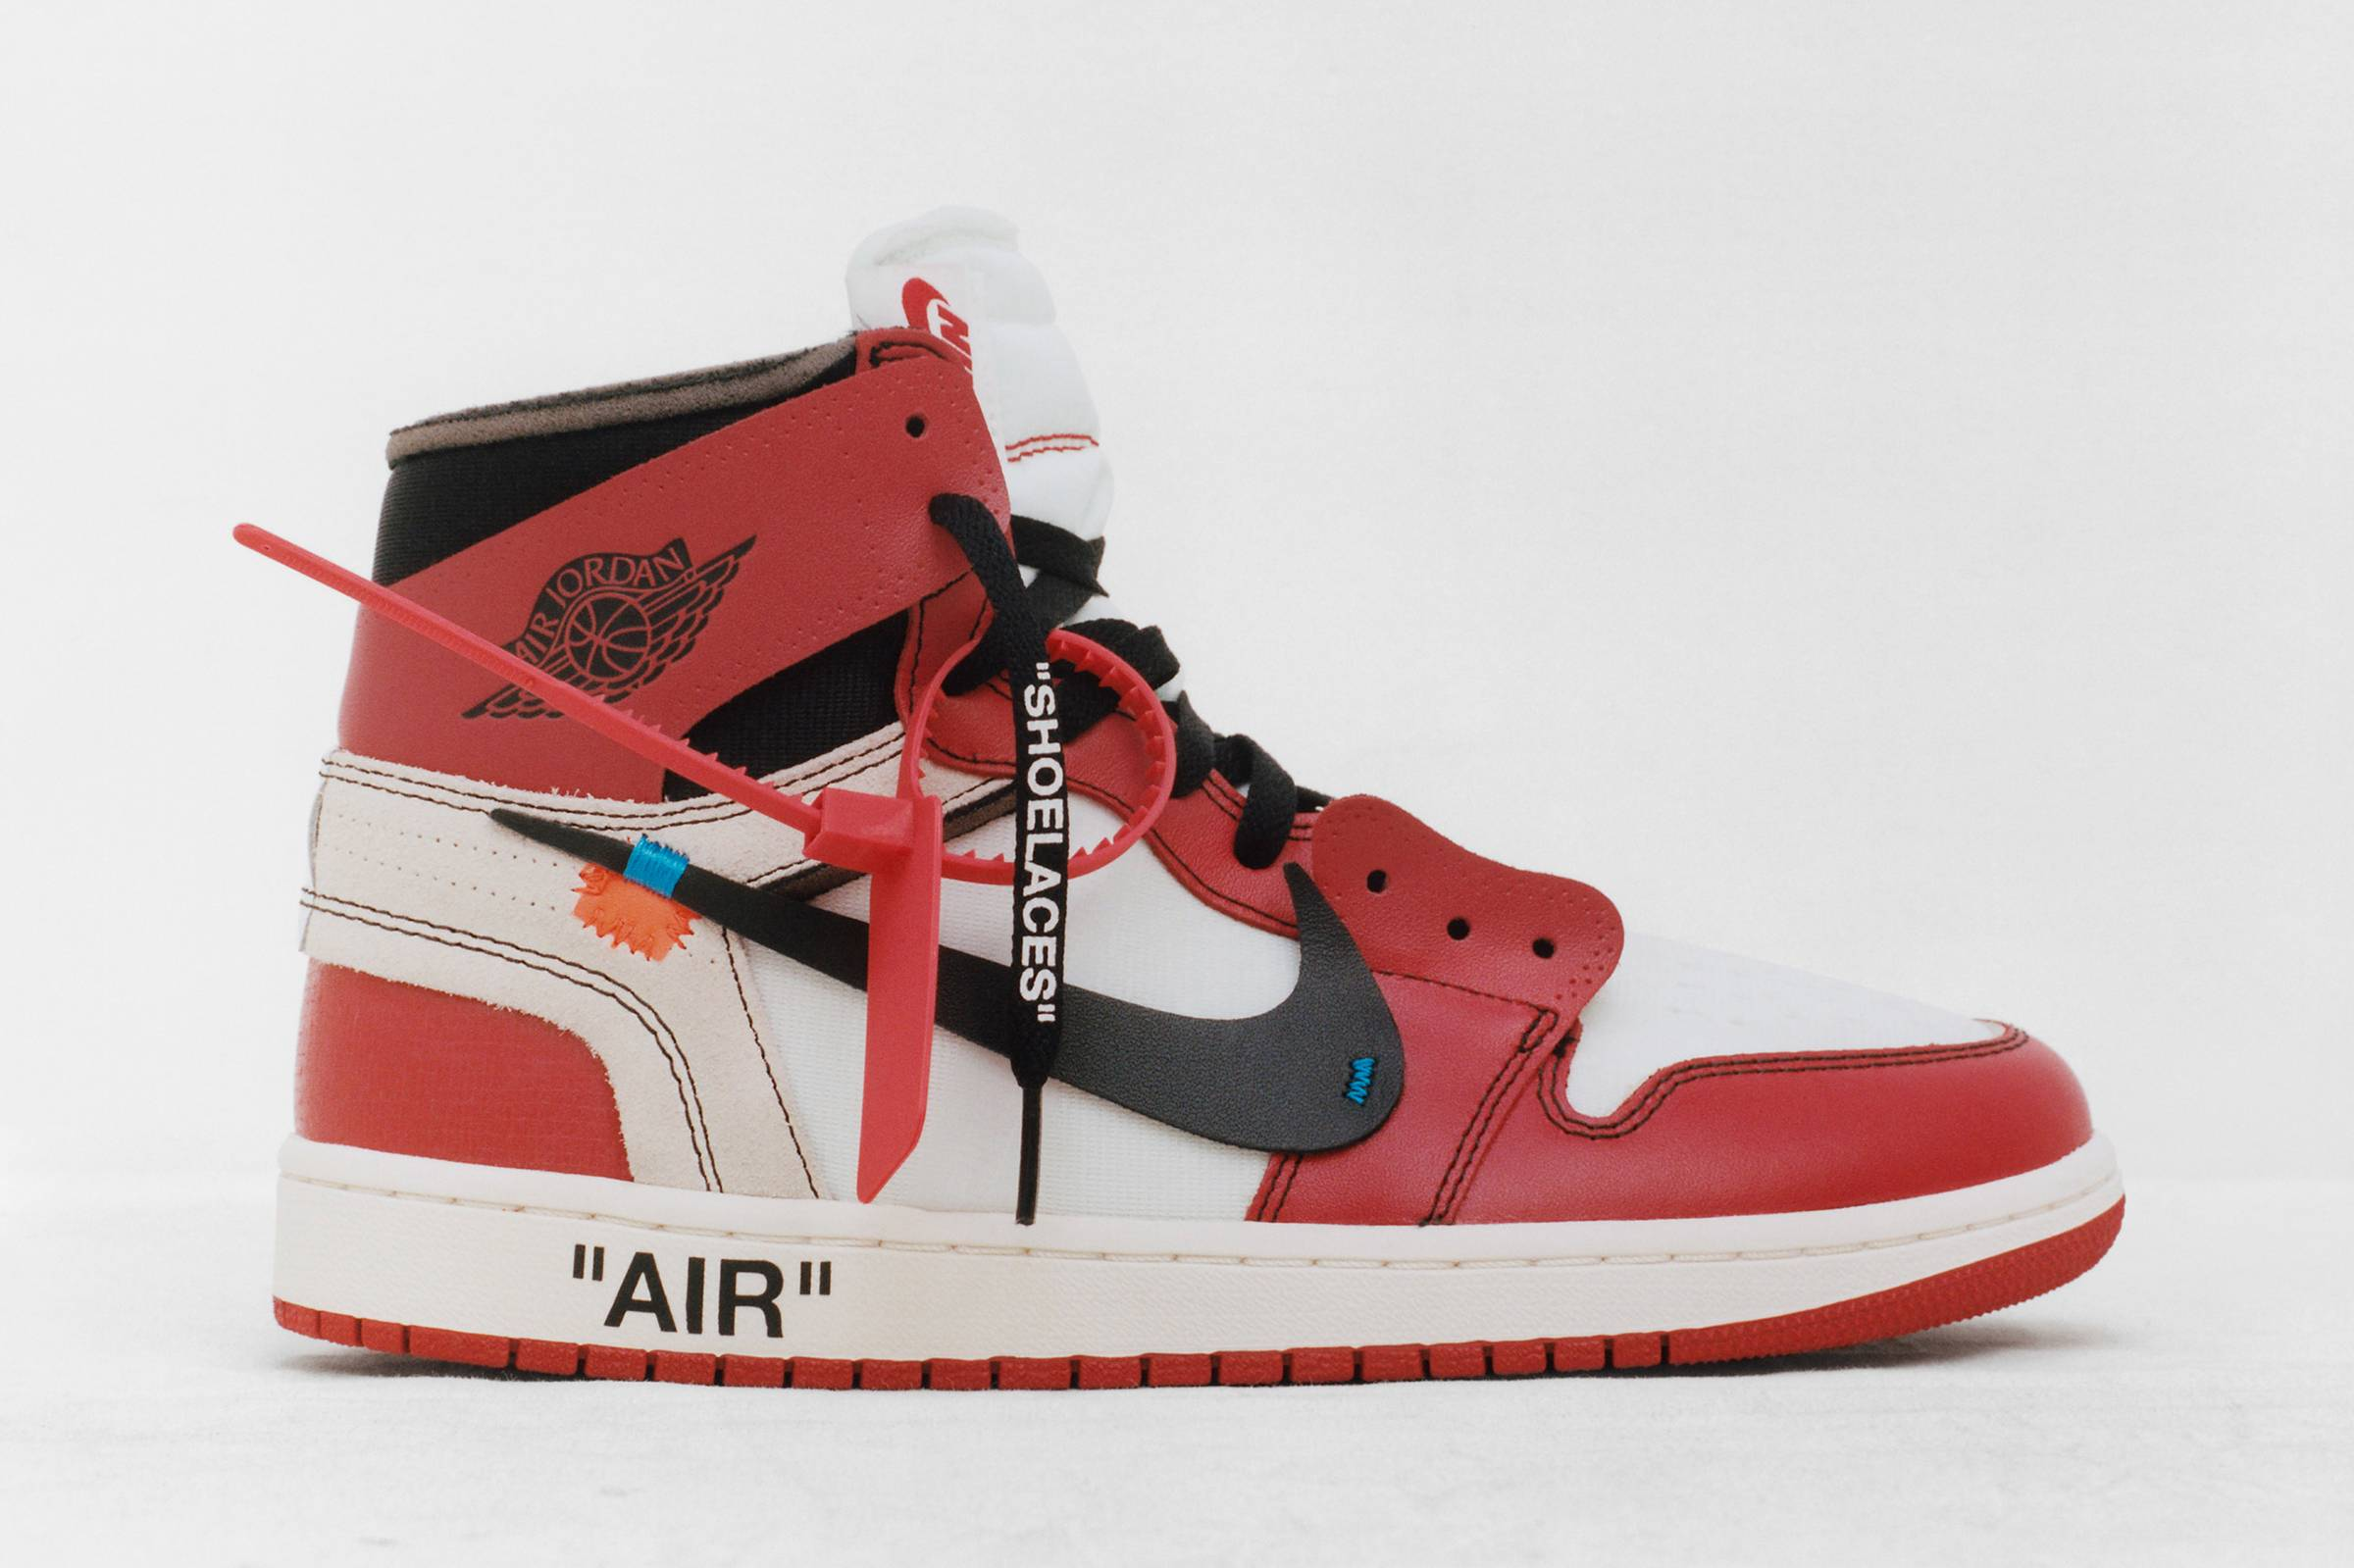 quality design 99b15 dfc75 Off-White x Nike Jordan 1